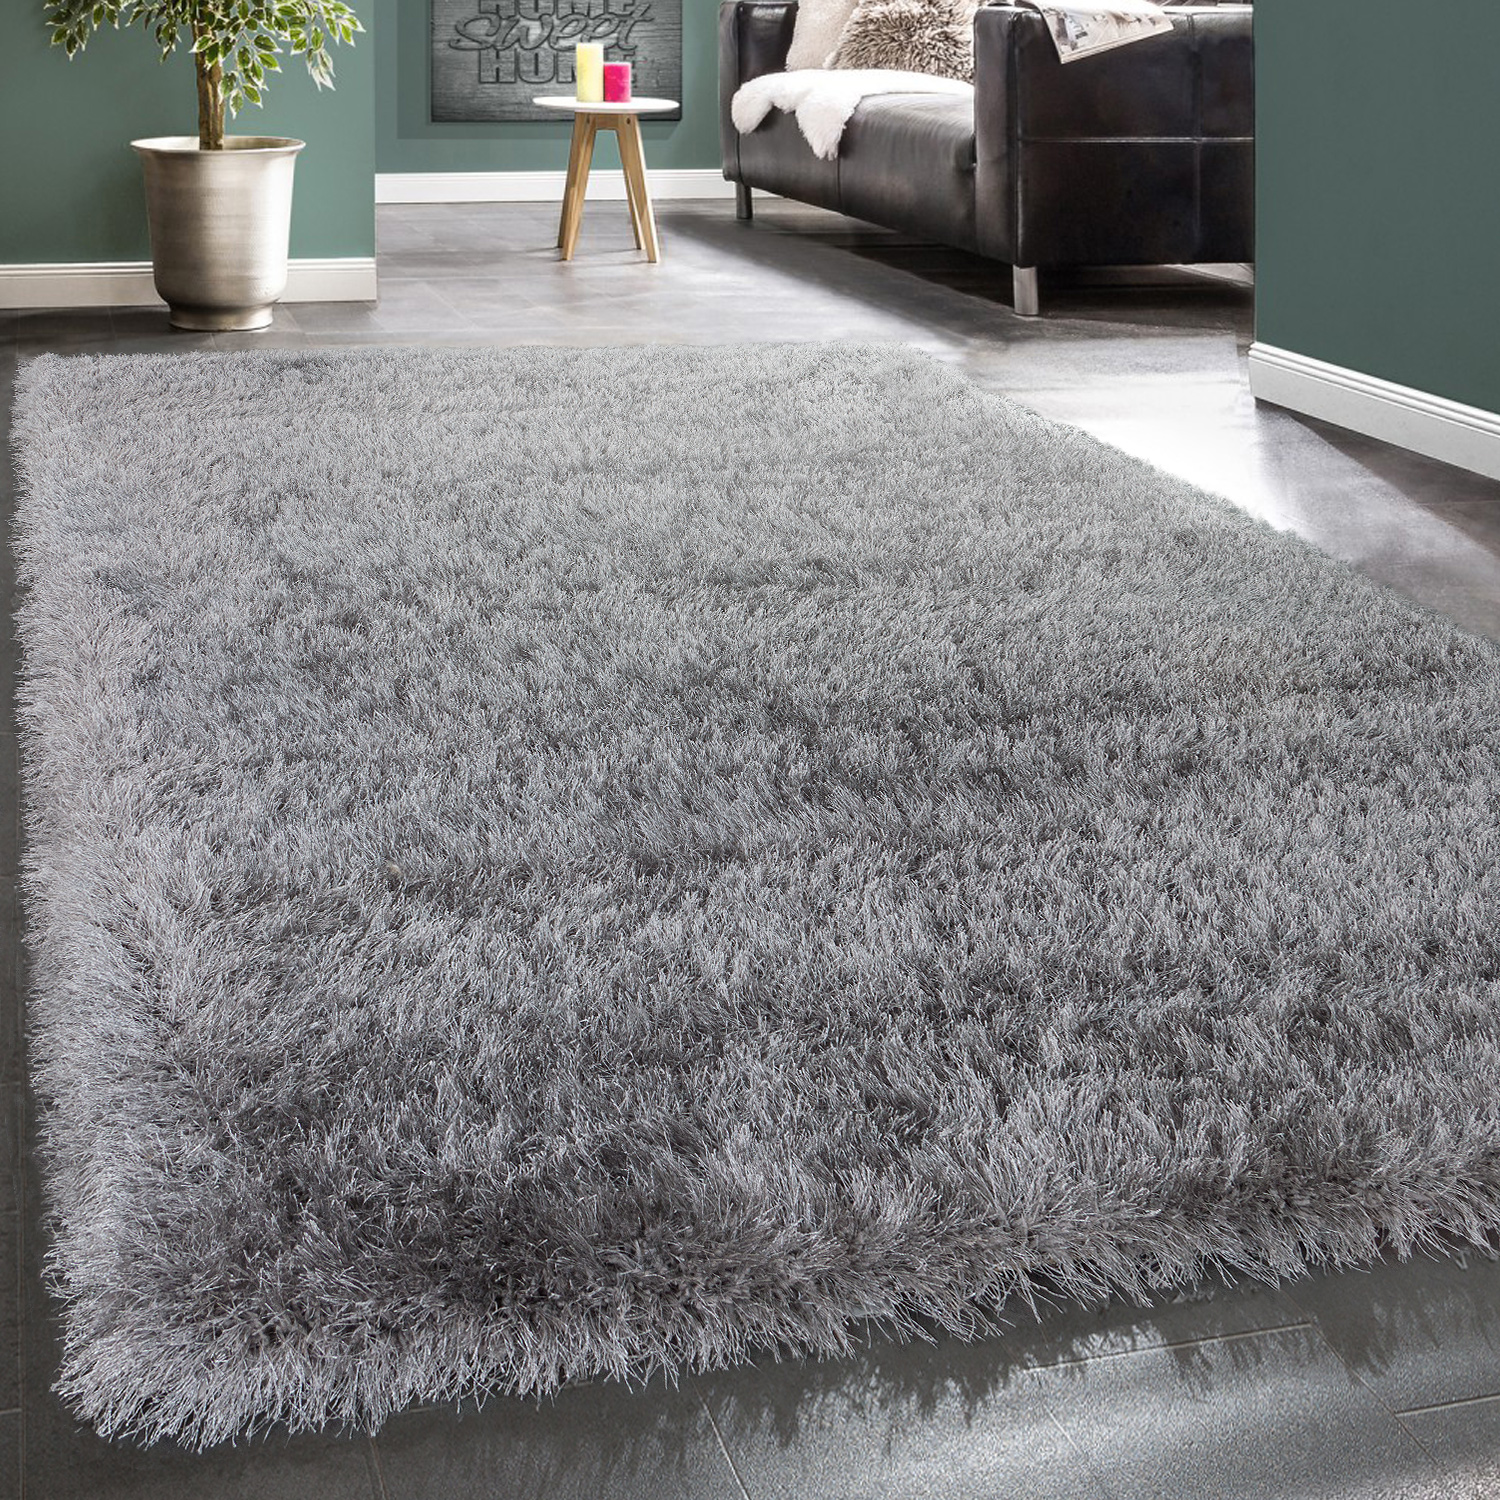 Shaggy Rug Soft Grey